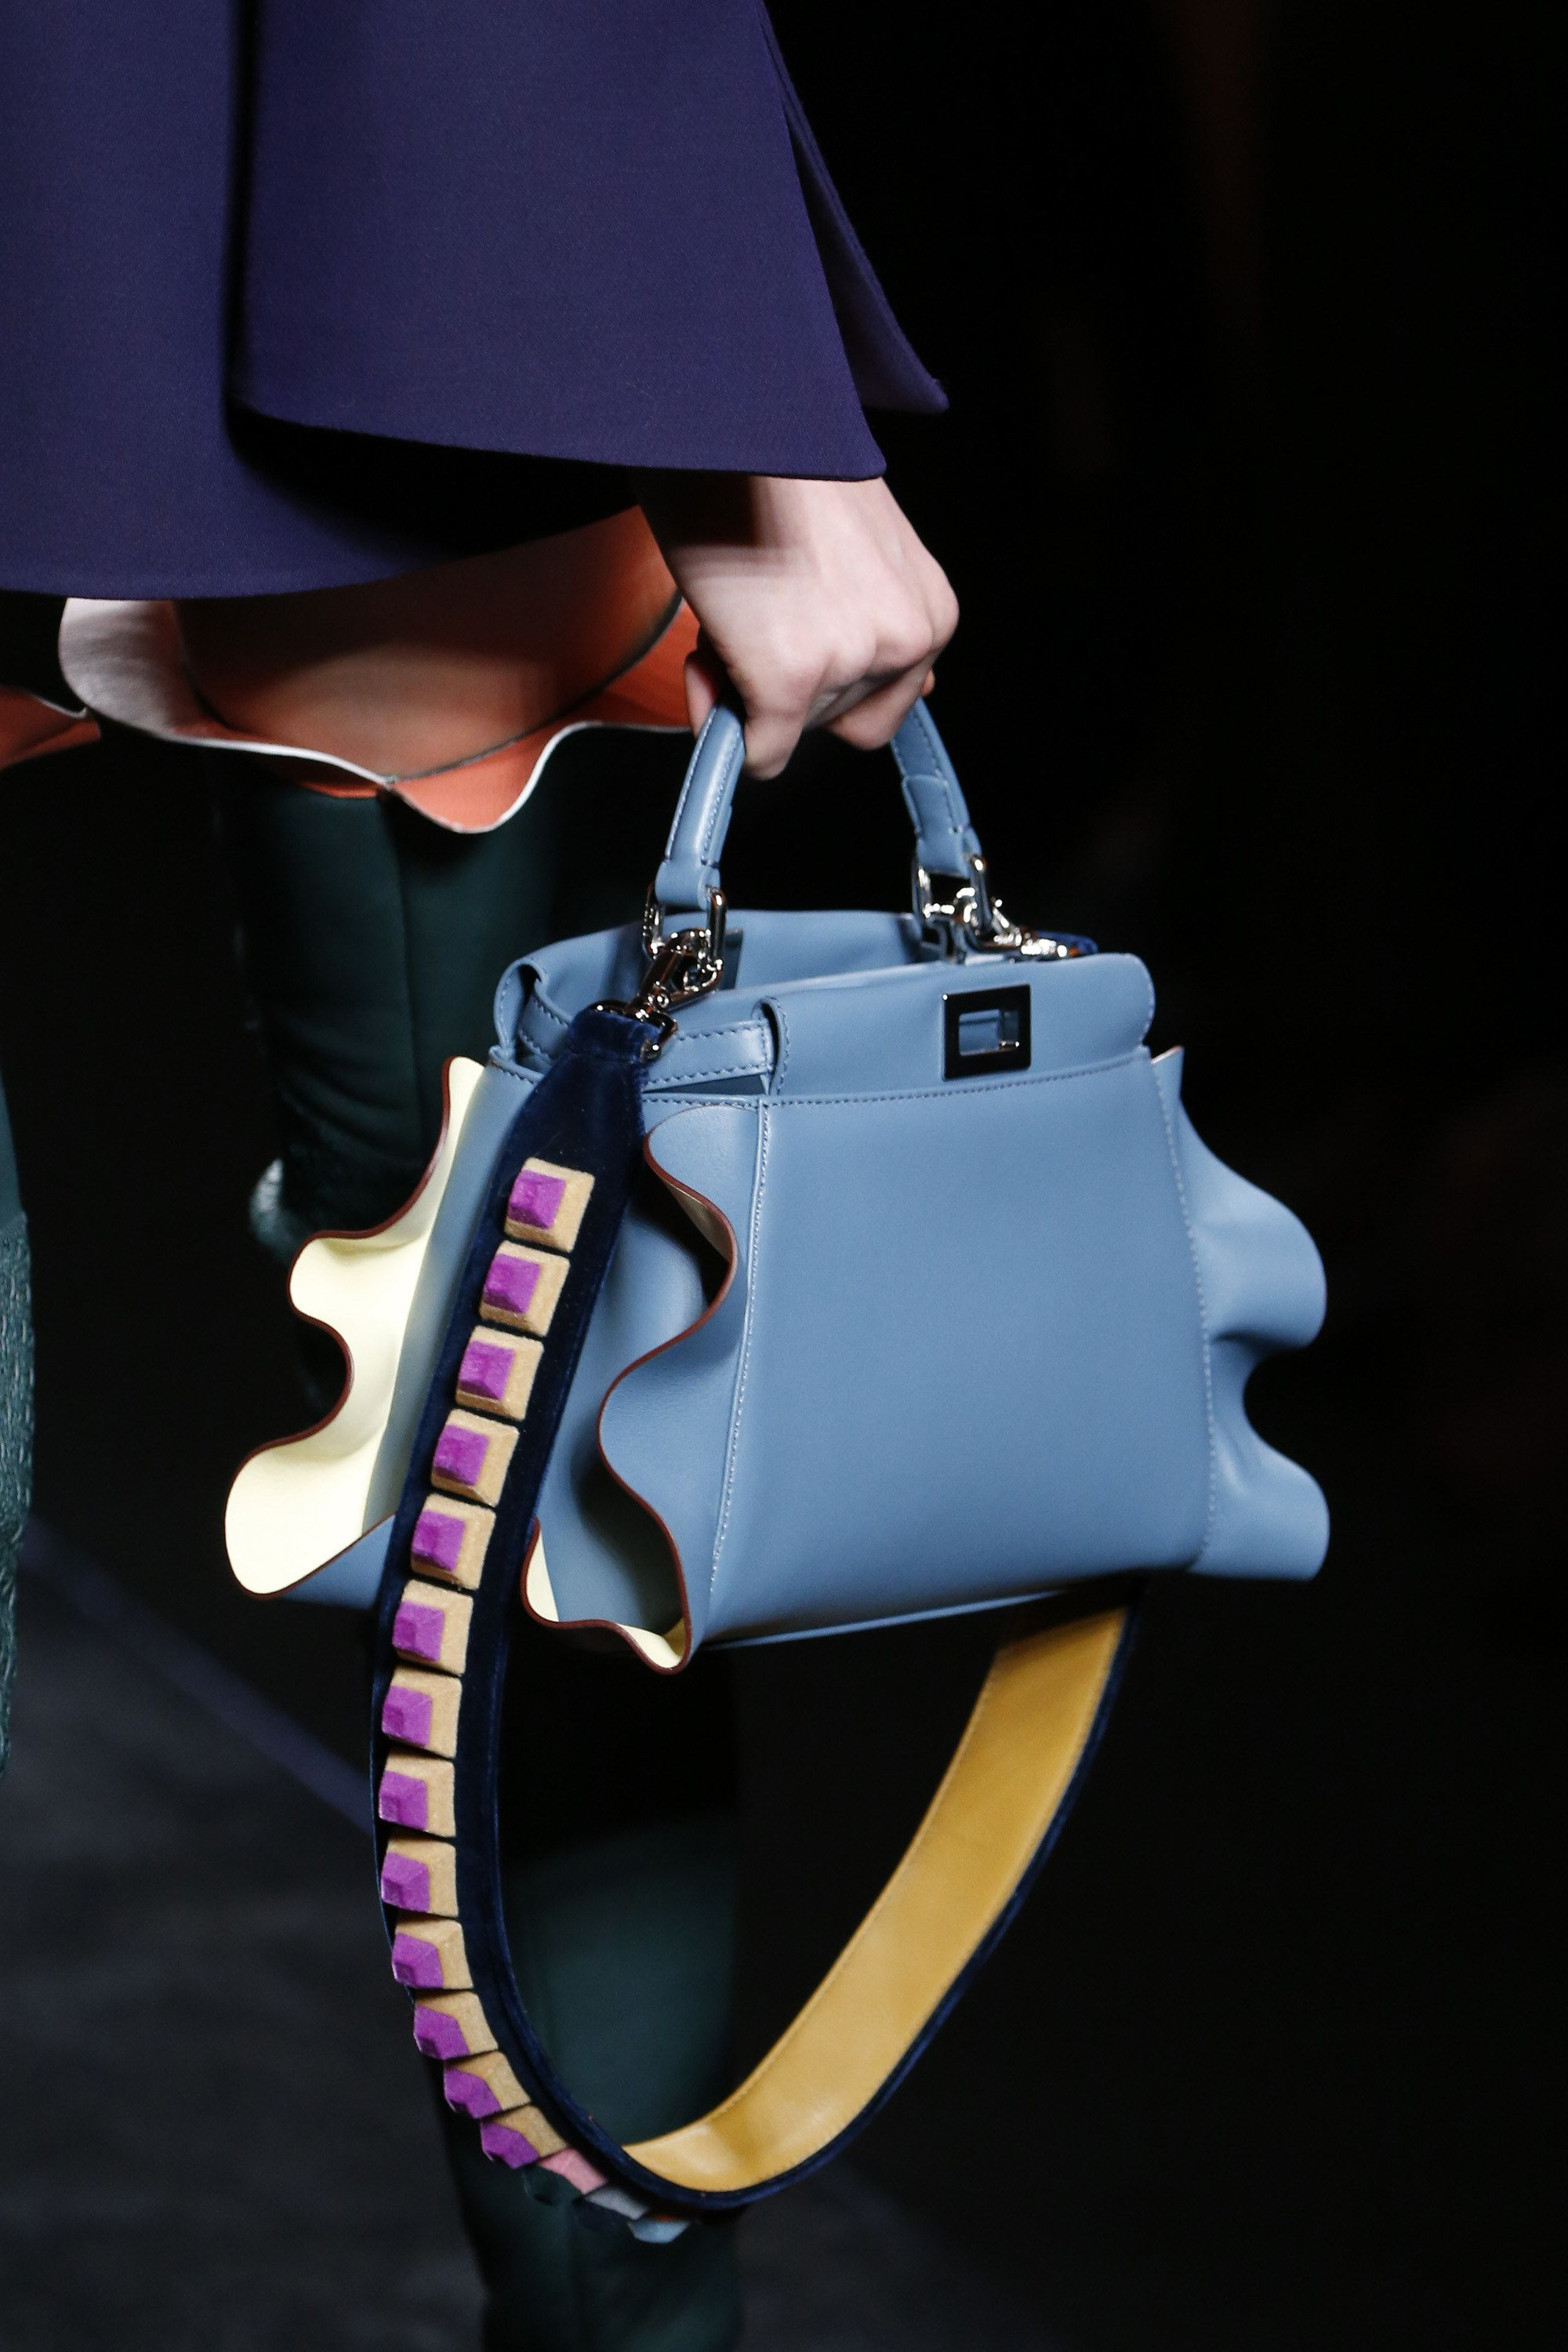 Fendi Fall 2016 - Bright blue ruffle edge peekaboo top handle bag with  contrasting strap - Ready-to-Wear Fashion Show Details...x d1fc8e65b26b4